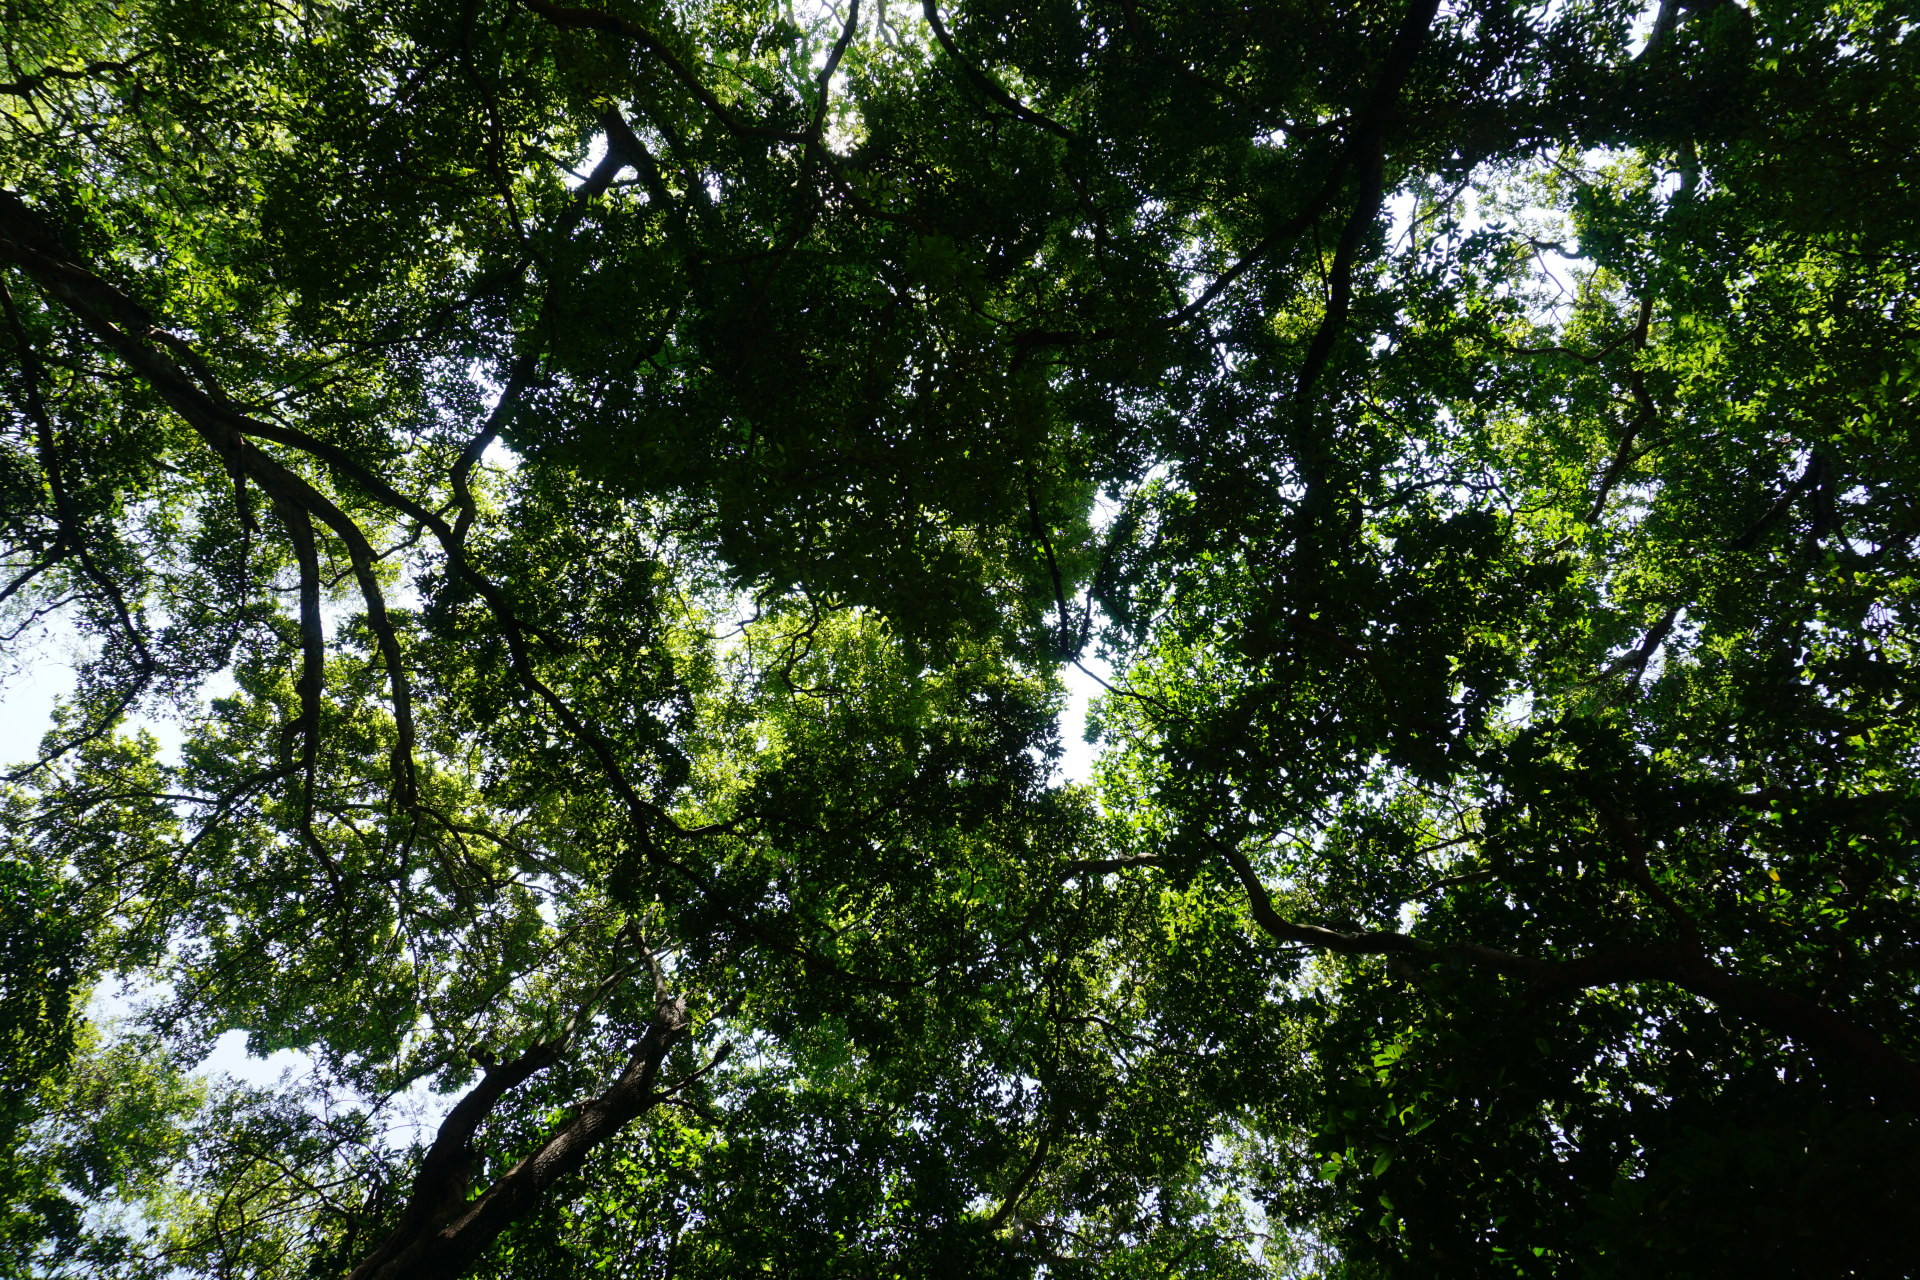 Closed canopy rainforest